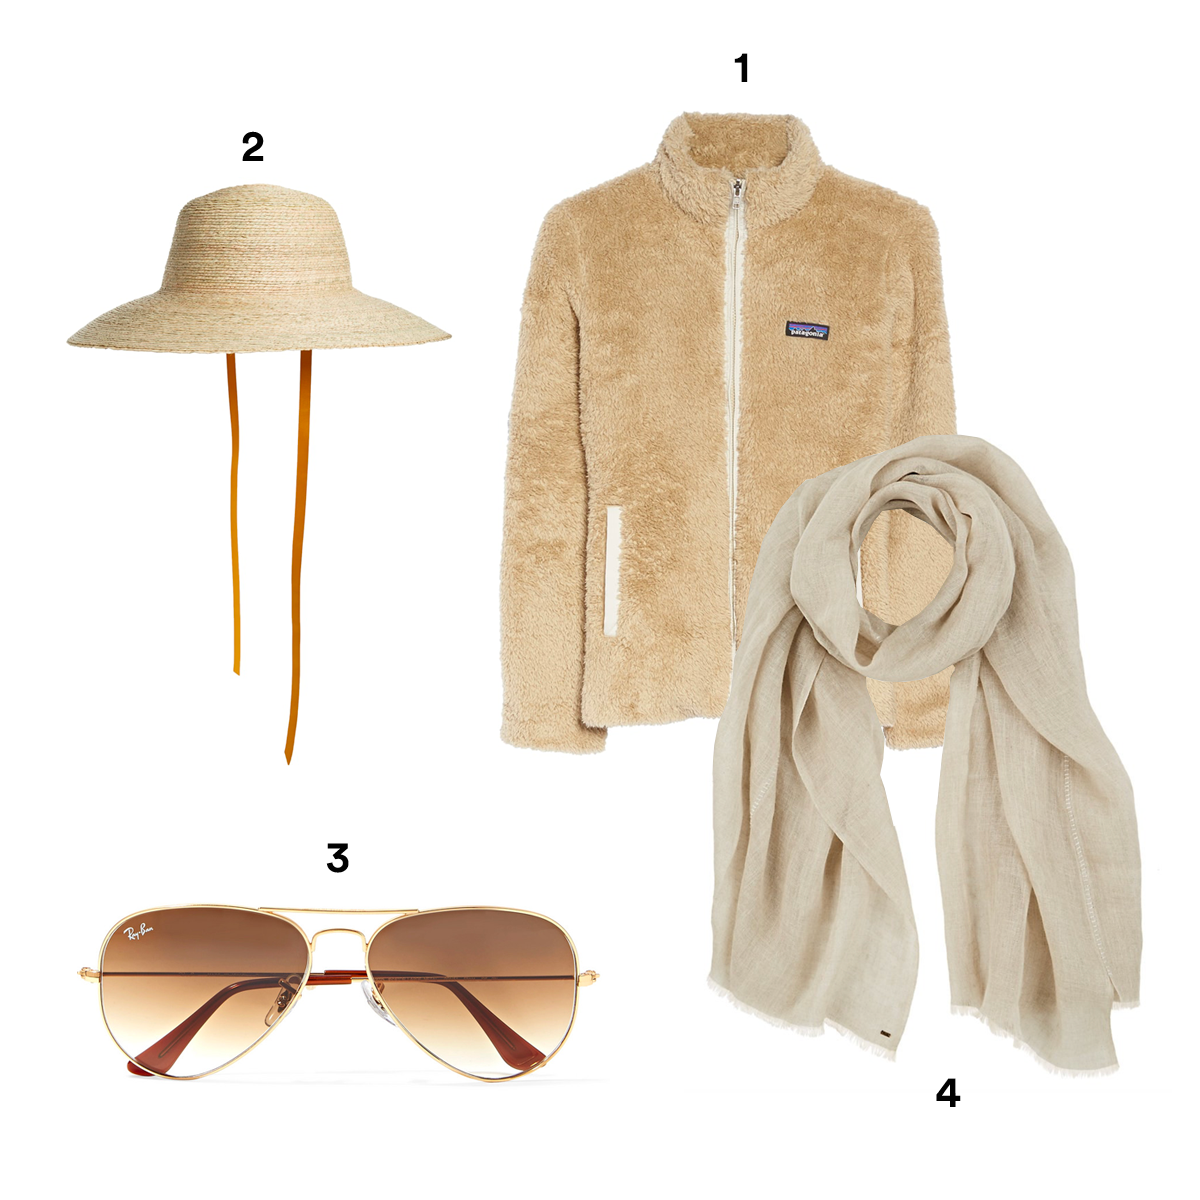 1.) PATAGONIA Los Gatos Fleece Jacket, available at Nordstrom. 2.) BRIXTON Jaya Hat, available at Nordstrom. 3.) RAY-BAN Aviator Gold-Tone Sunglasses, available at The Sunglass Hut. 4.) FROM THE ROAD Vari Linen Scarf, available at Barneys New York.